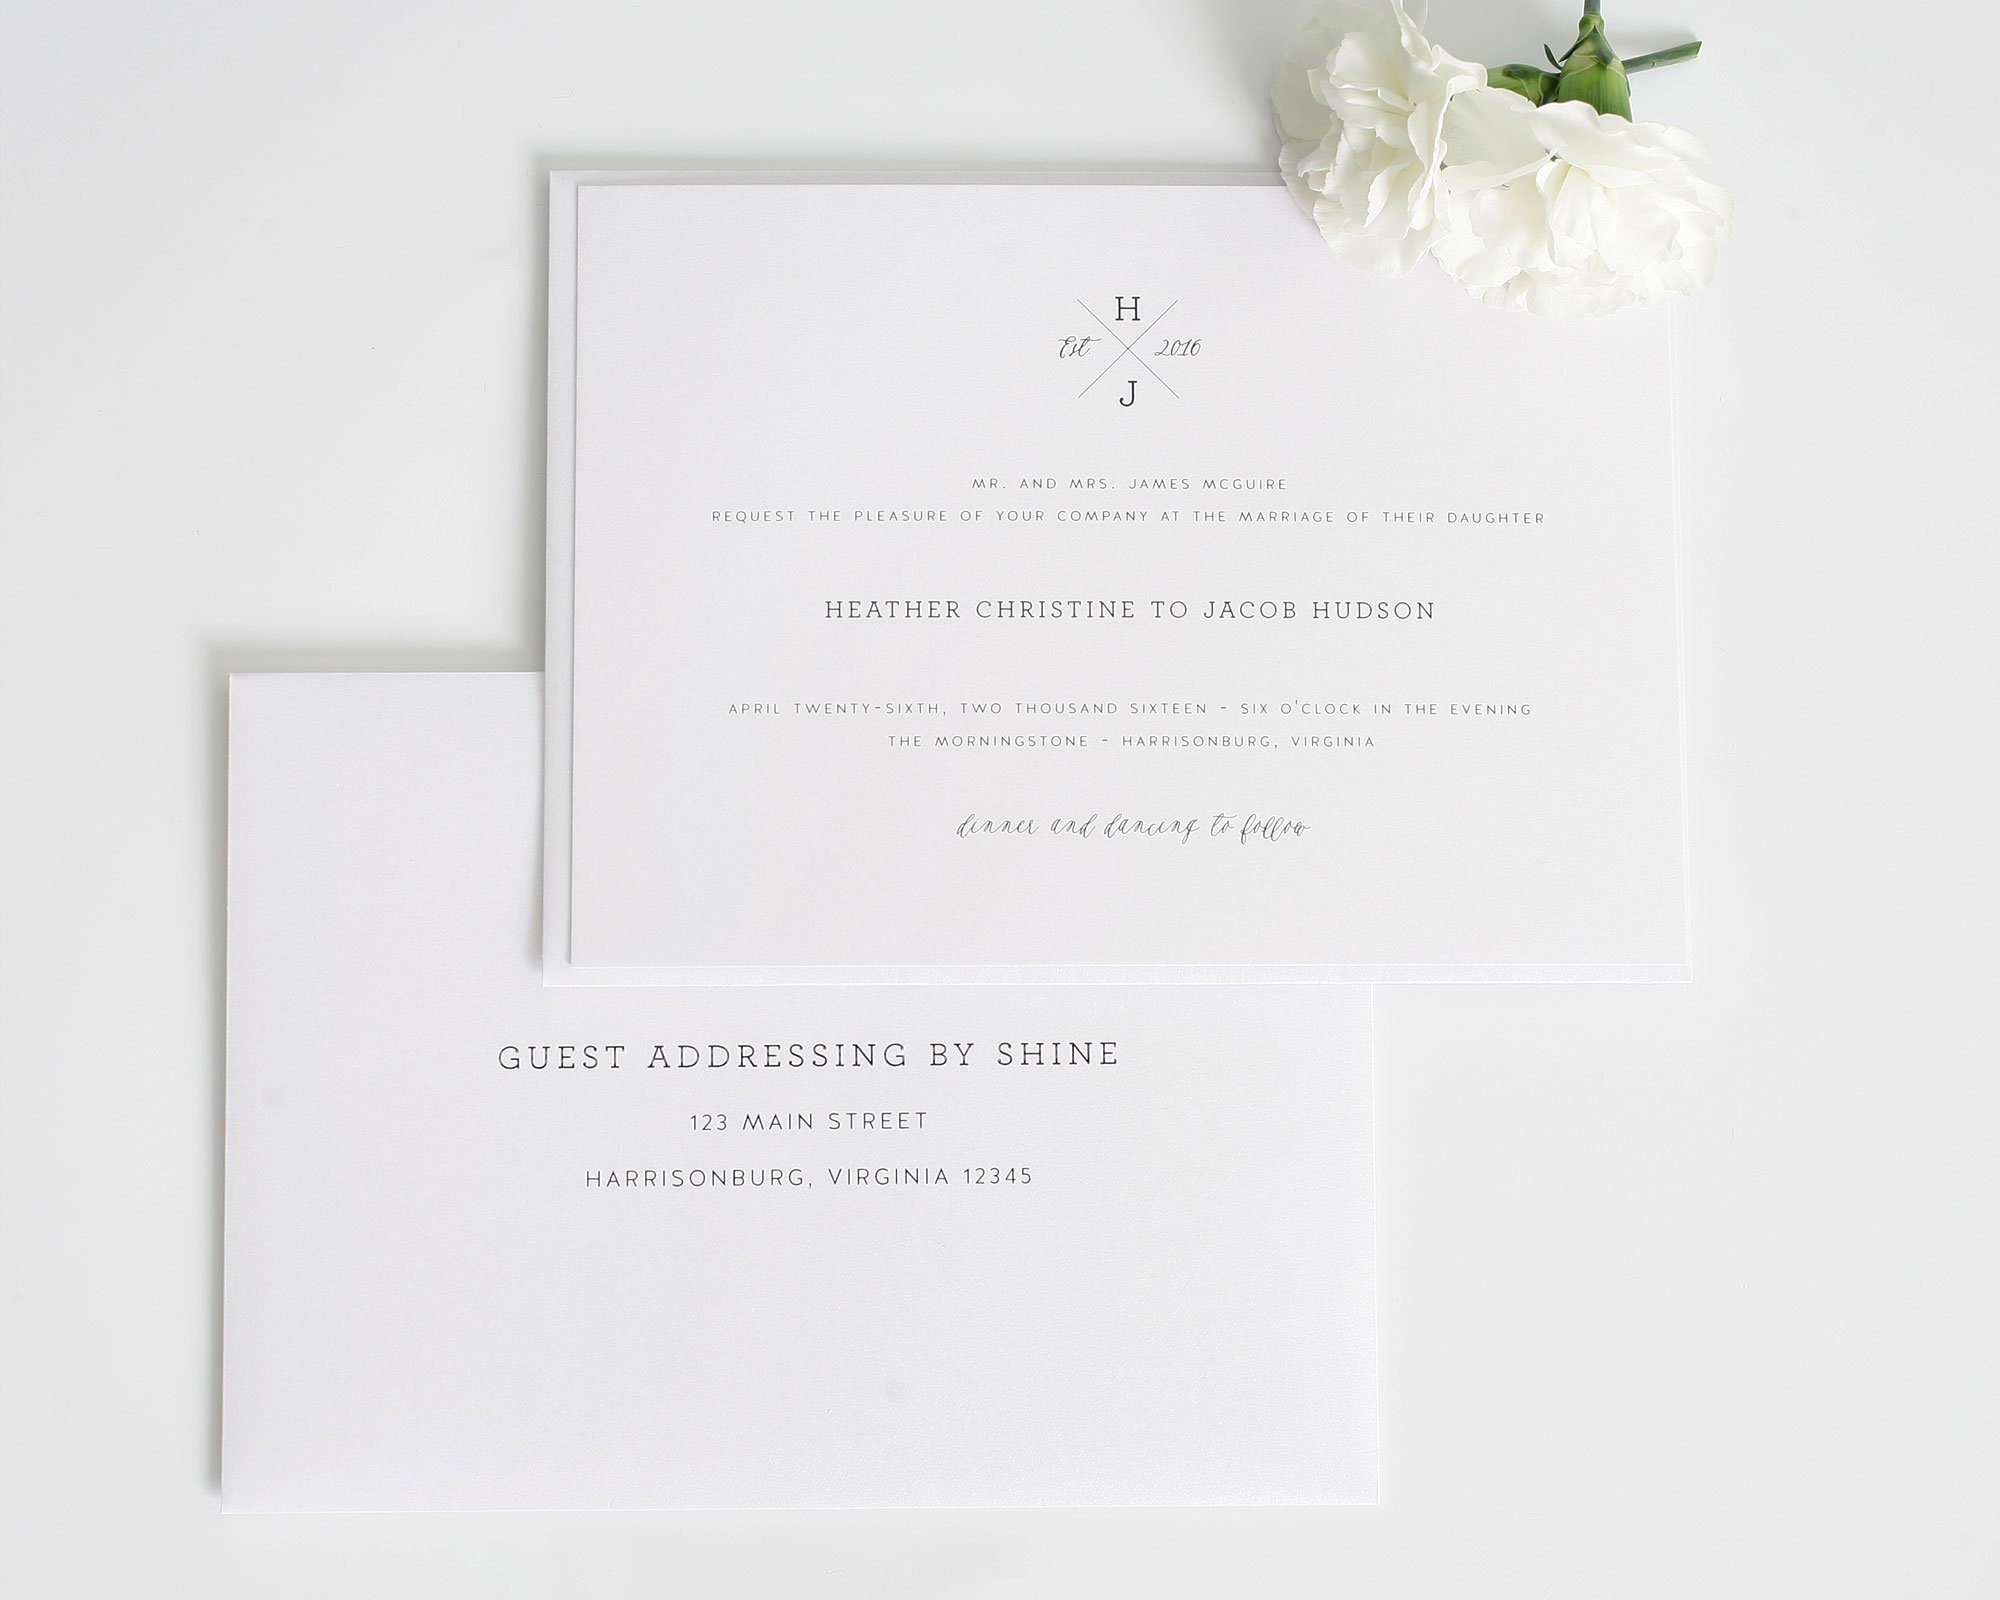 guest-addressing-white-wedding-invitations